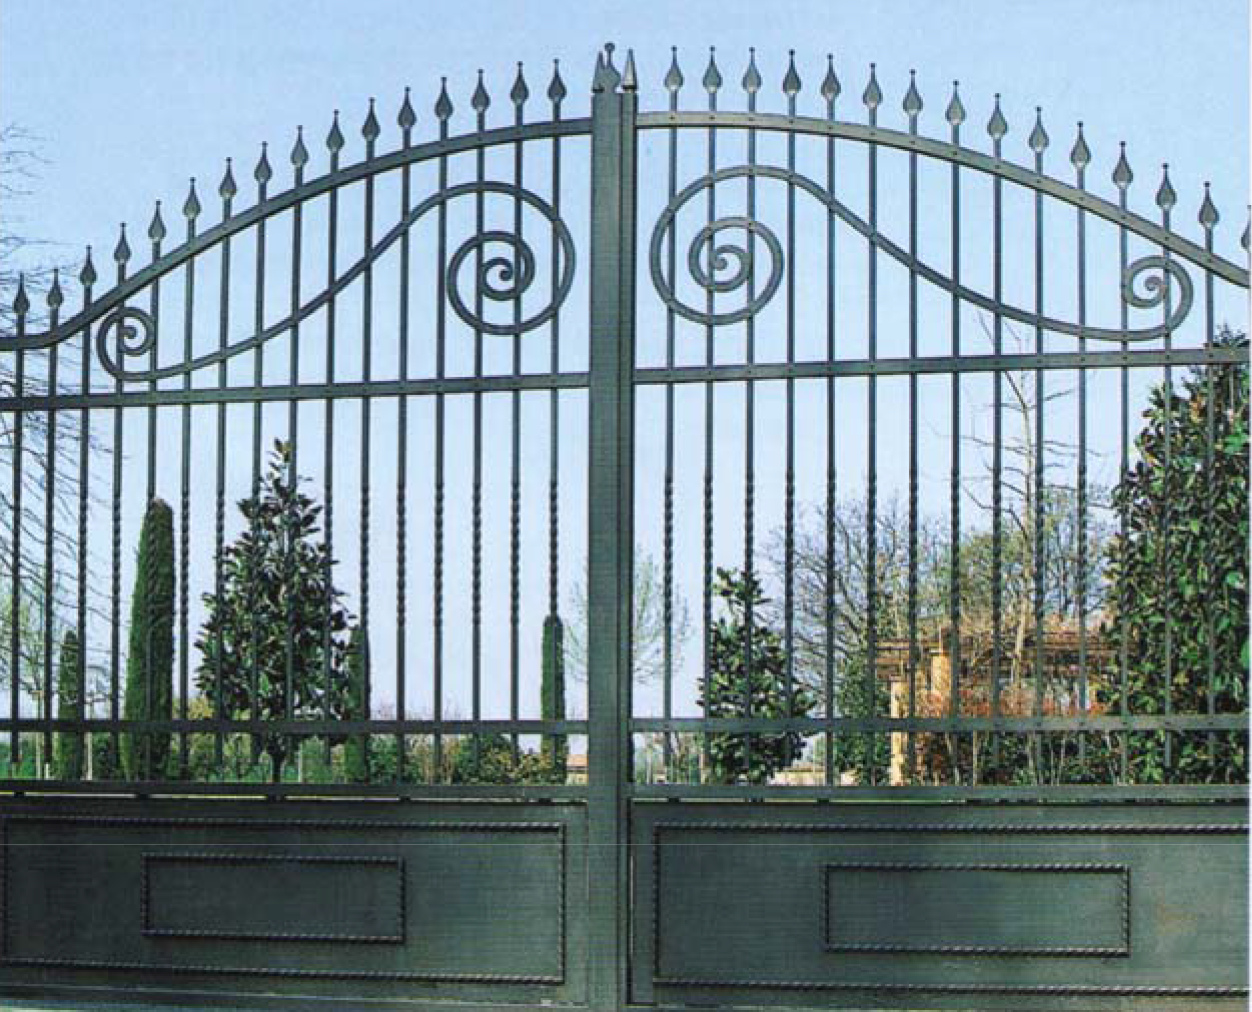 automation gates surrey armor gate speed street vancouver nice on swing langley toona action motors install latest in driveway our high area